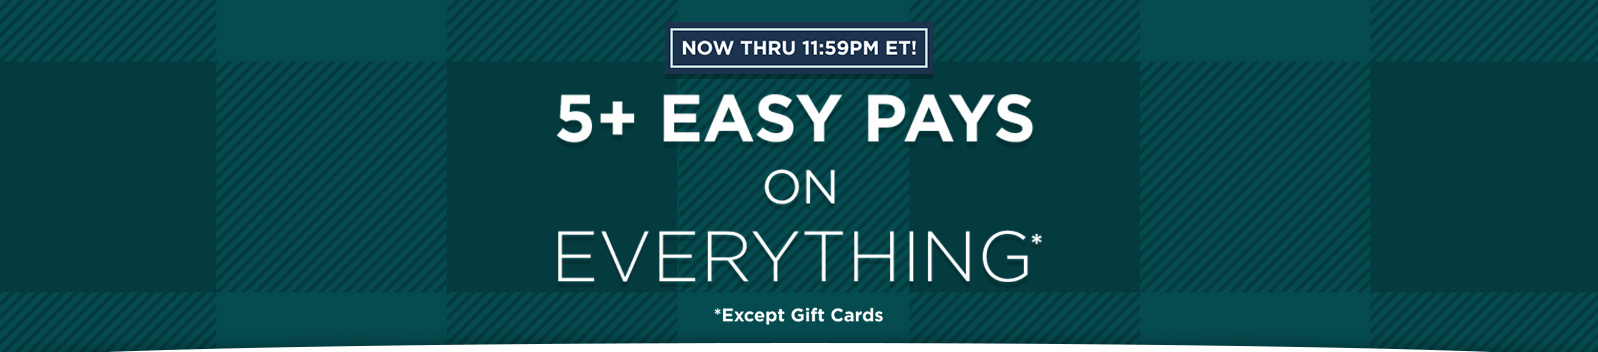 Now thru 11:59pm ET! 5+ Easy Pays on Everything Except Gift Cards